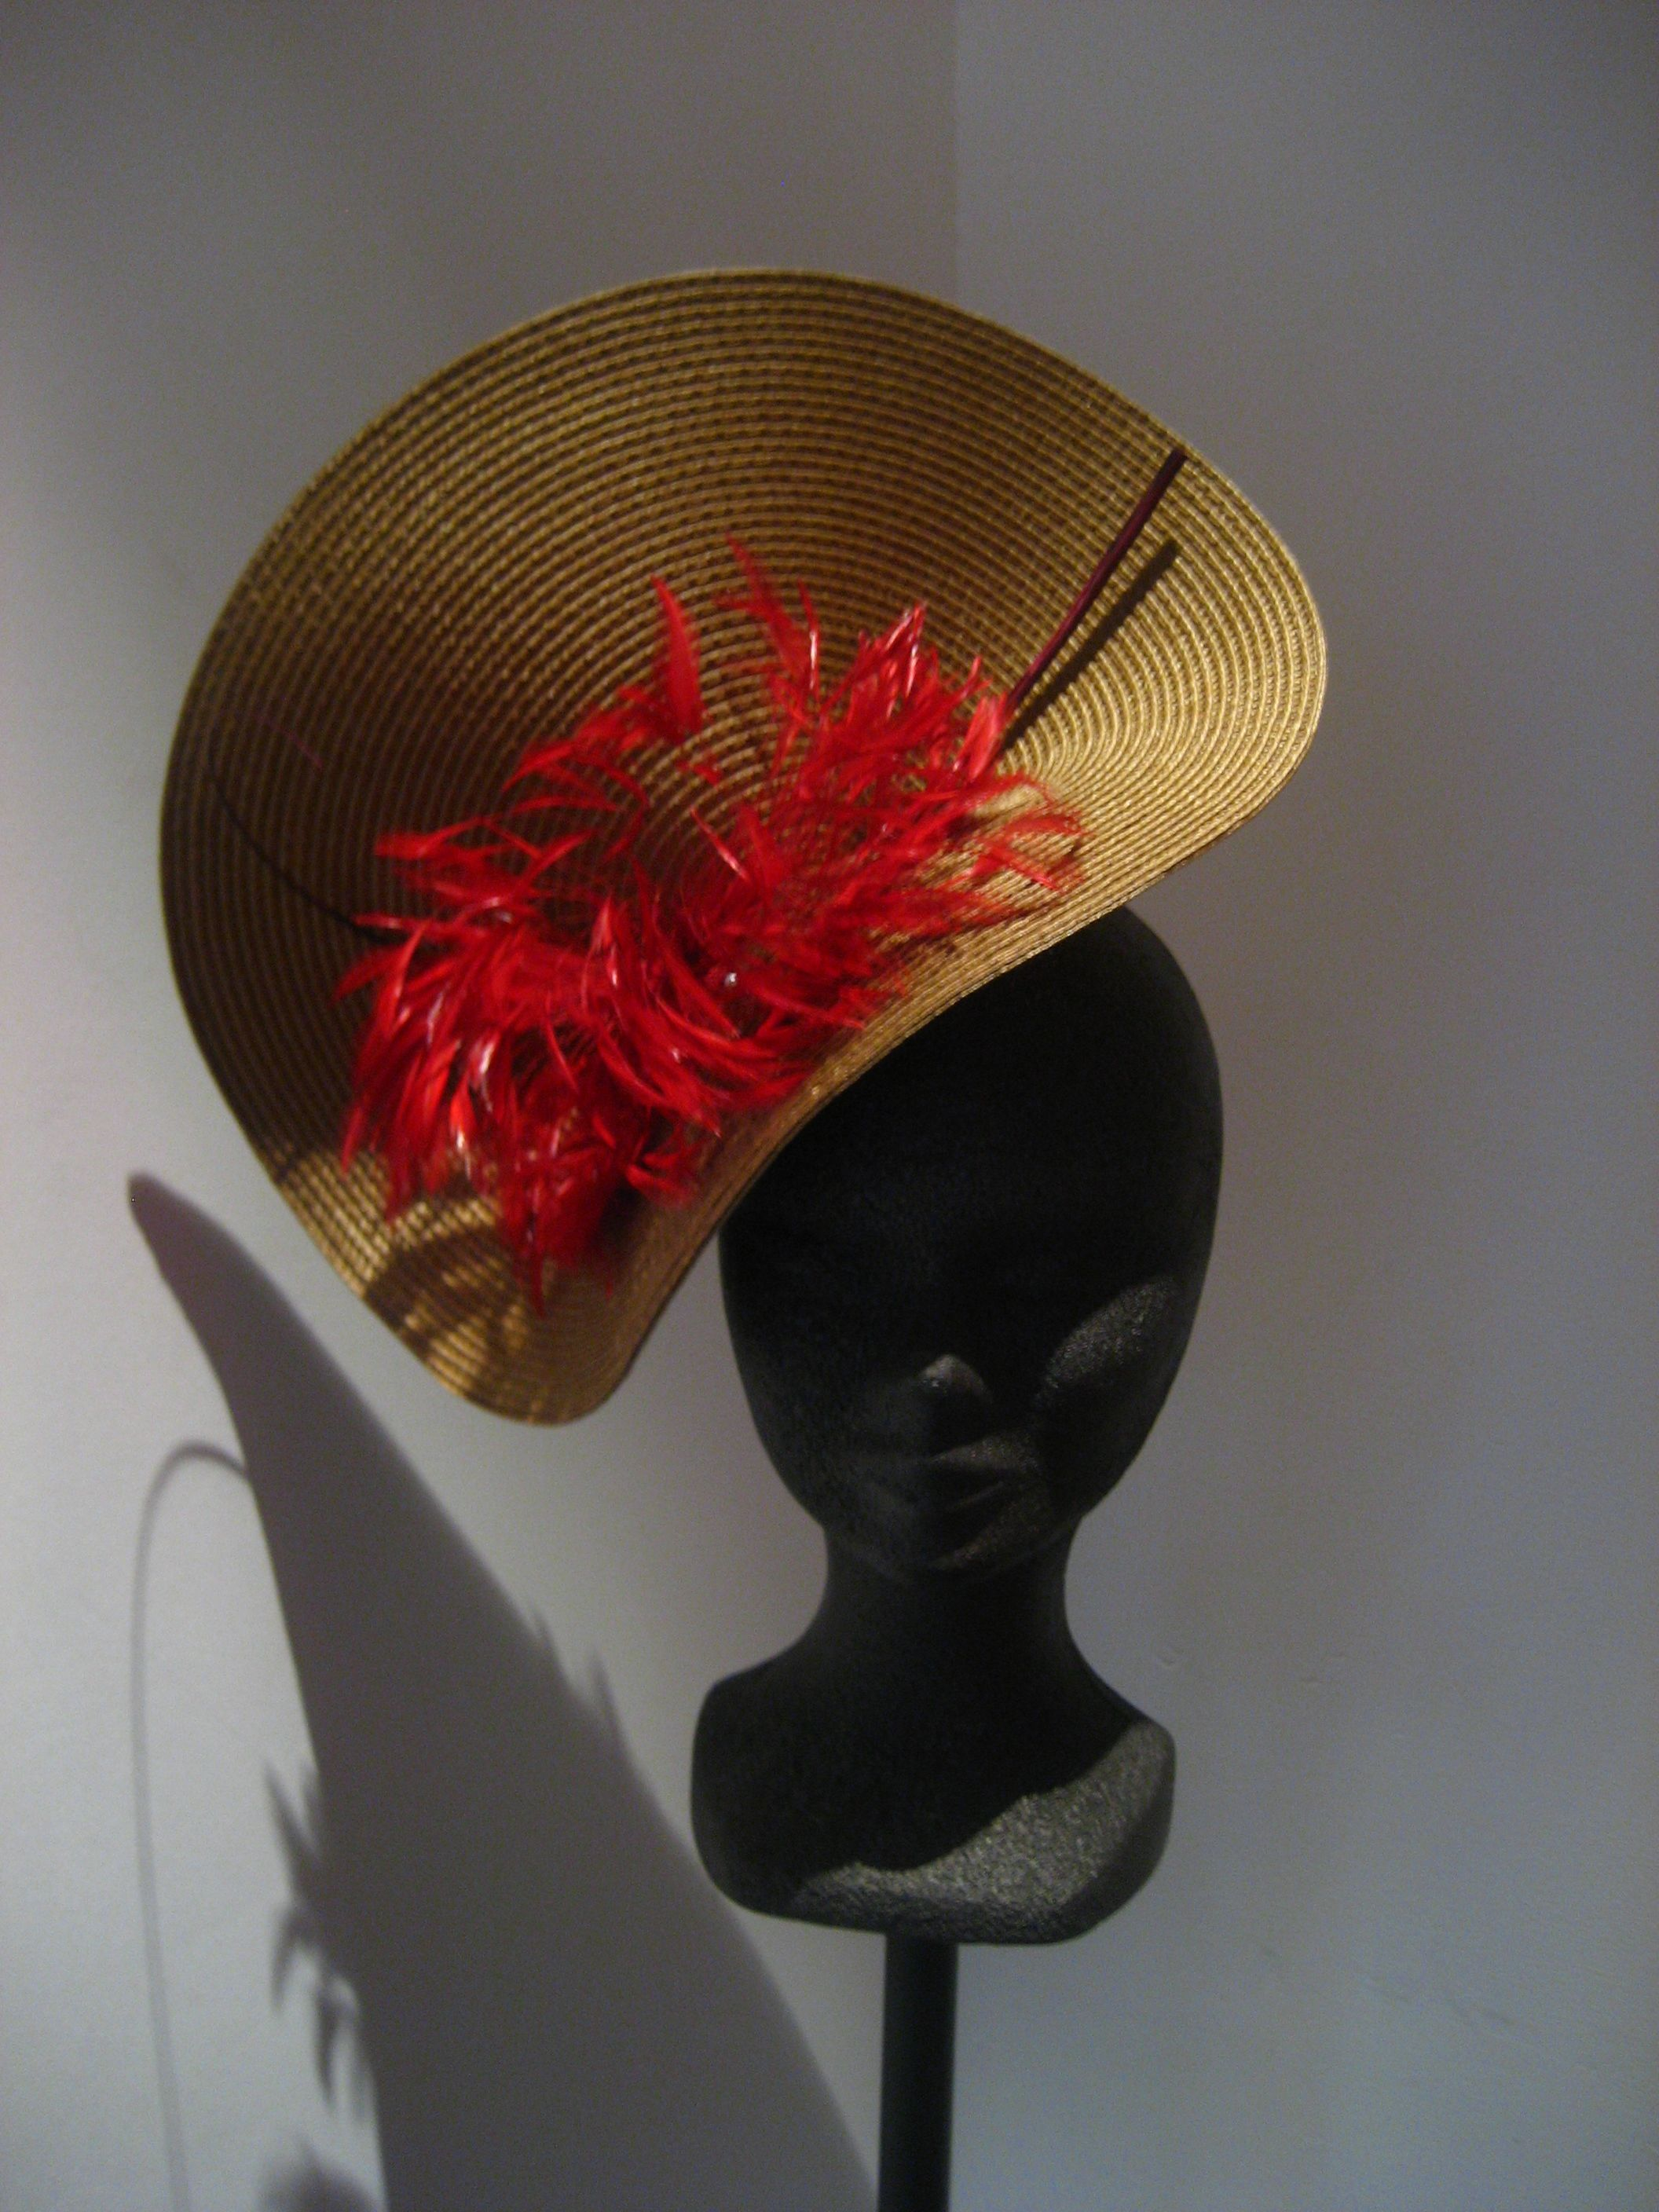 dabd07fdd8d5e fascinator with quil and orange feathers - Cap a di Carina